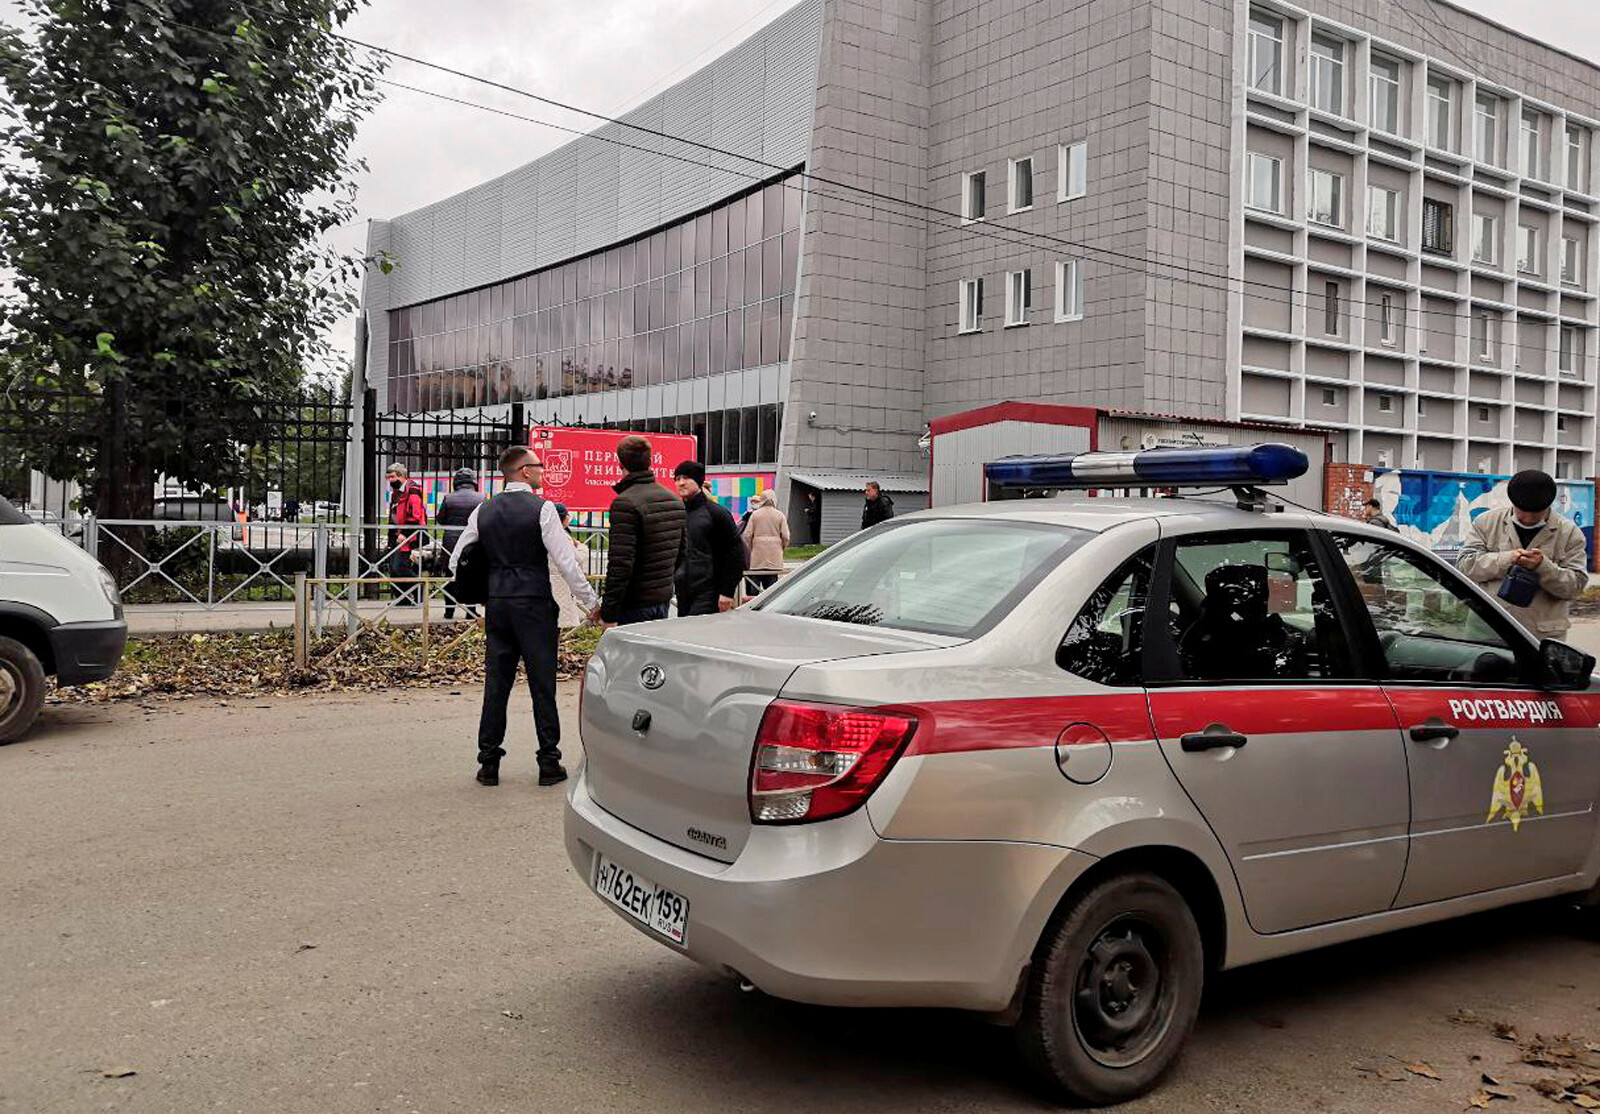 <i>Anna Vikhareva/Reuters</i><br/>A national guard car parked at the Perm State University after a gunman opened fire on Monday.